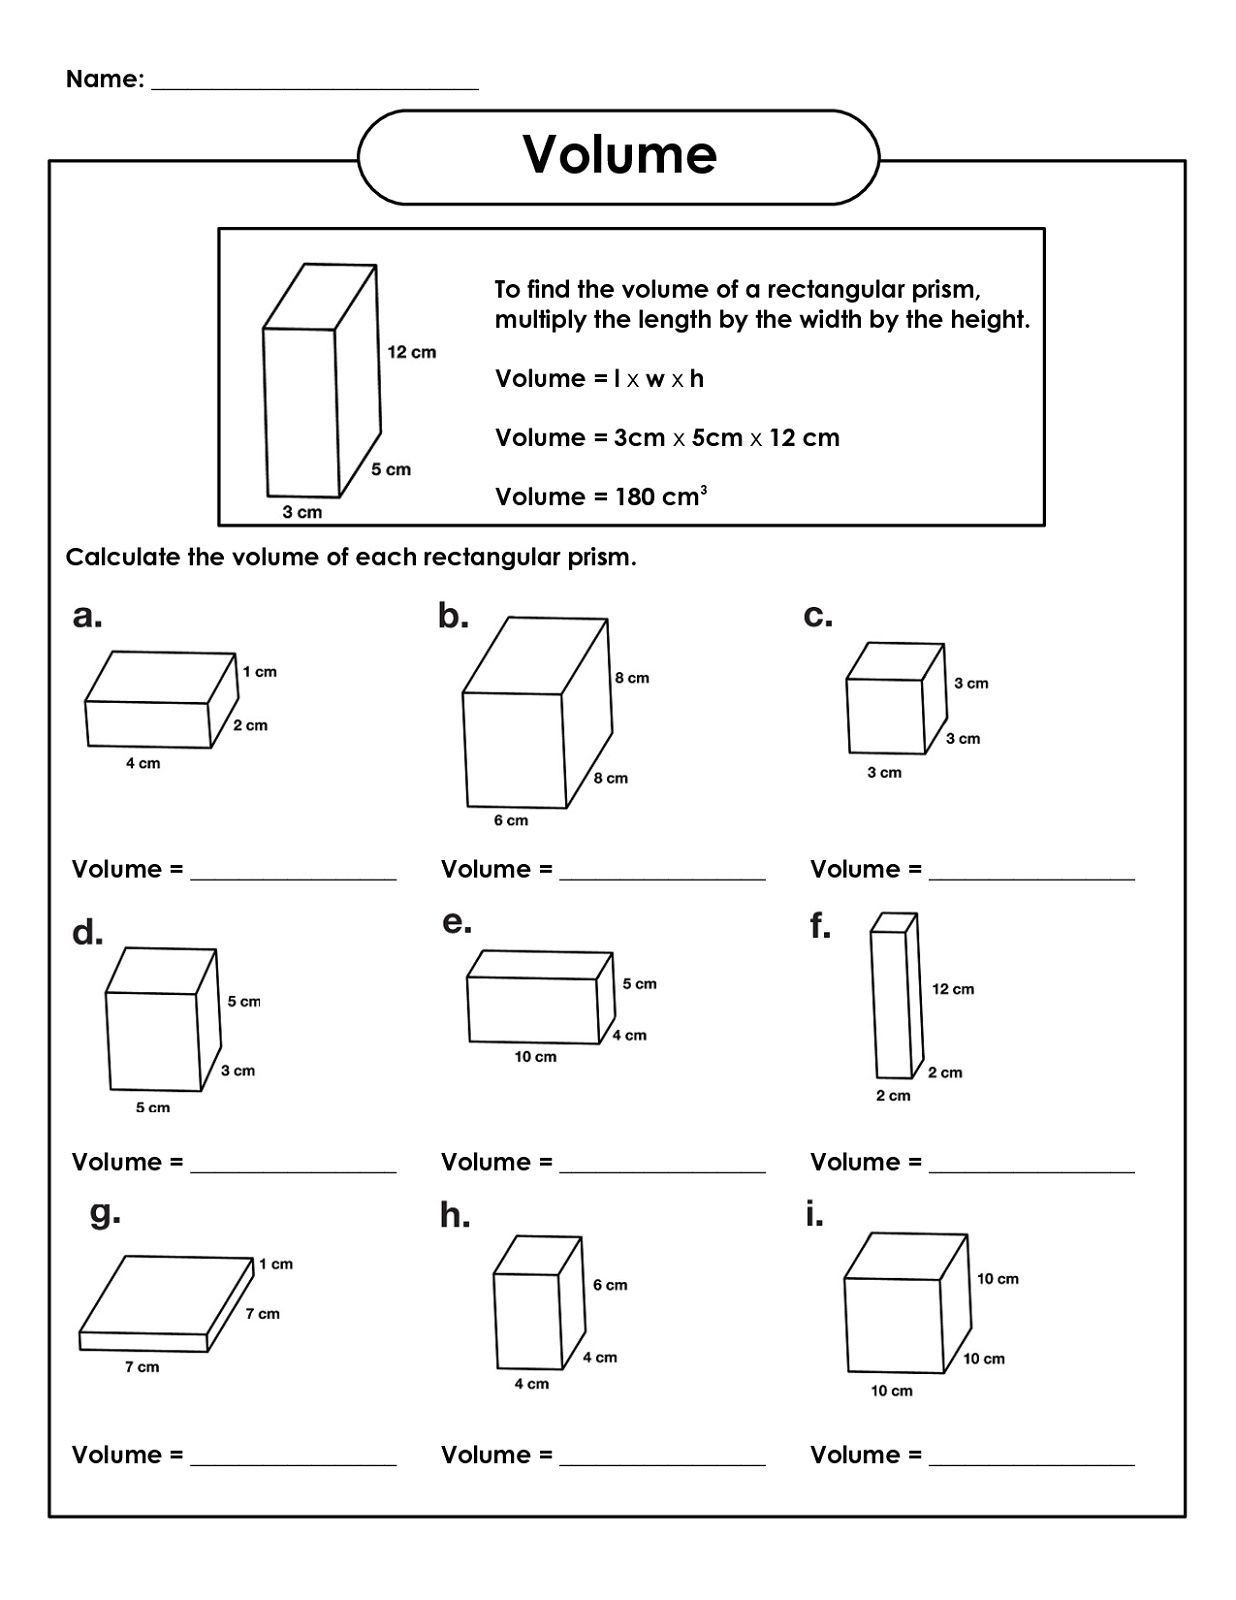 Volume Worksheets 3rd Grade Pin On Volume